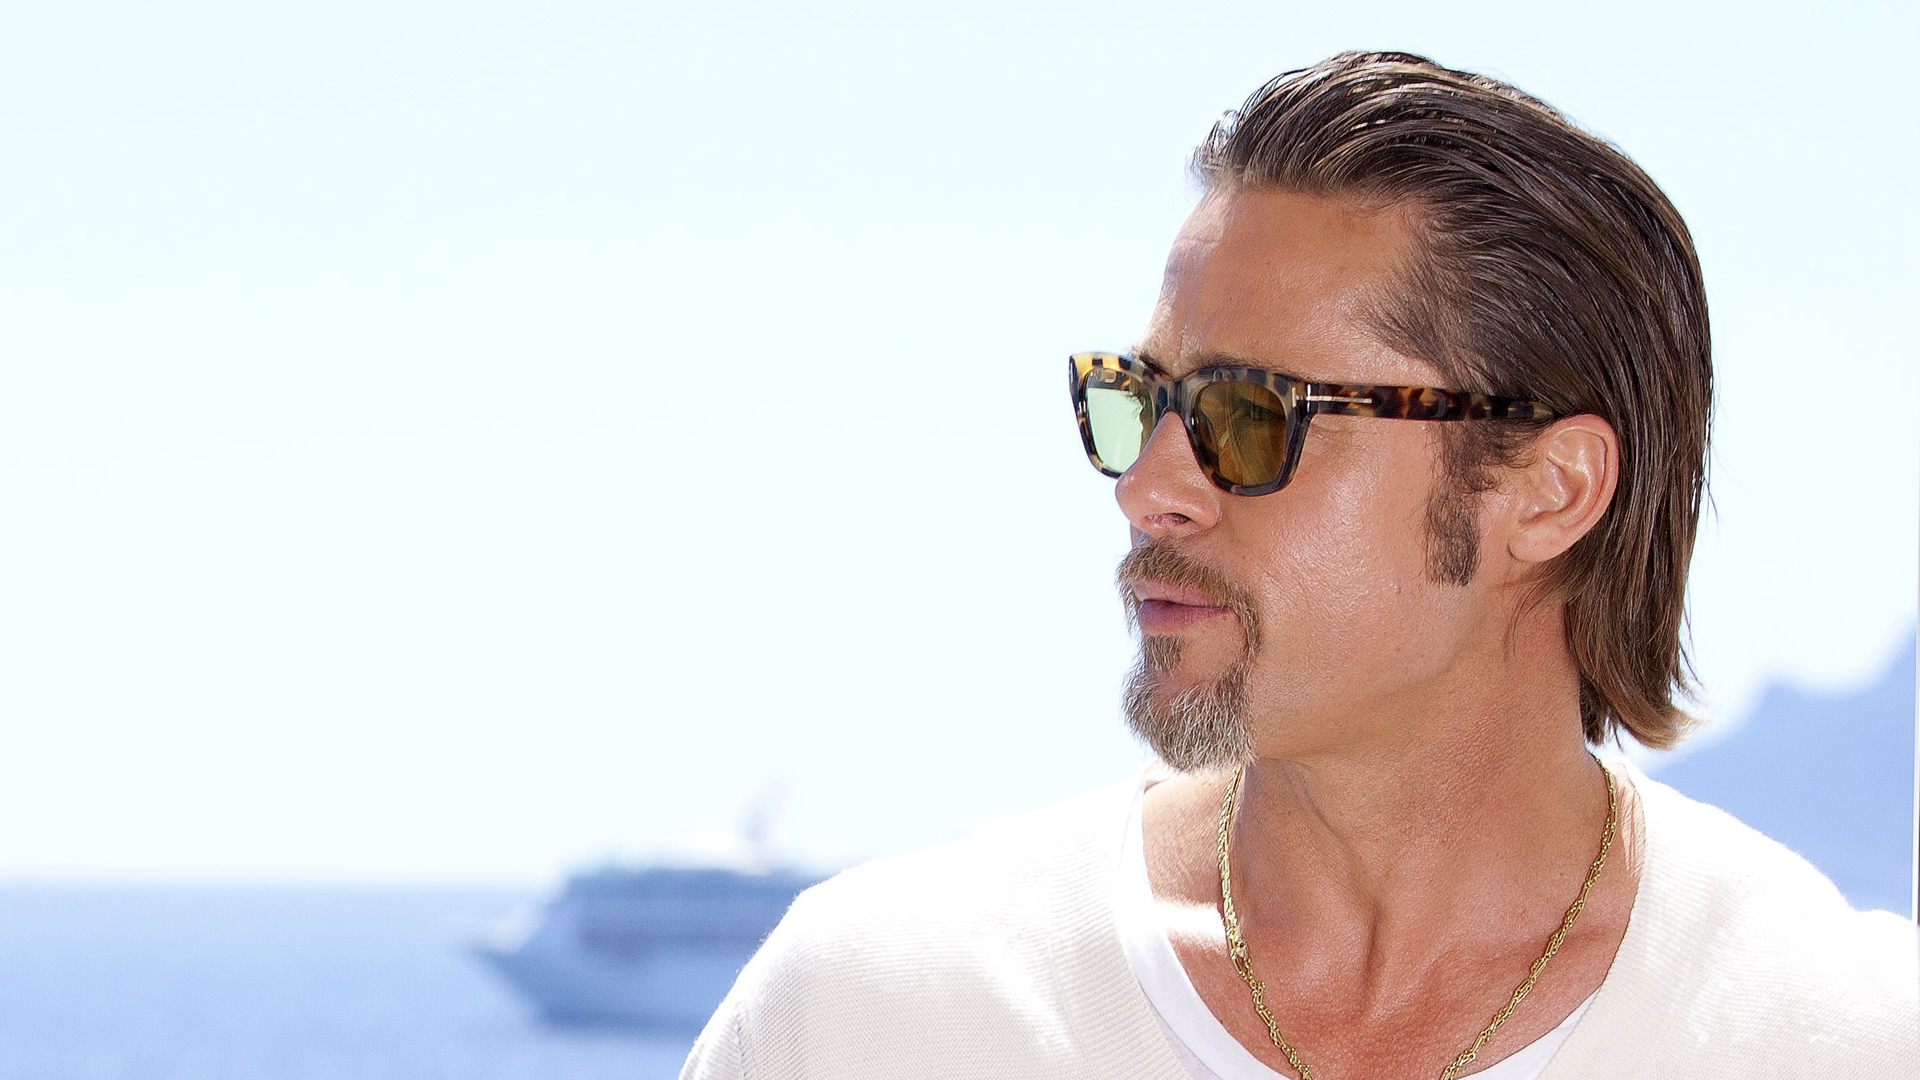 Brad Pitt Hd Wallpapers: Brad Pitt Wallpapers Images Photos Pictures Backgrounds